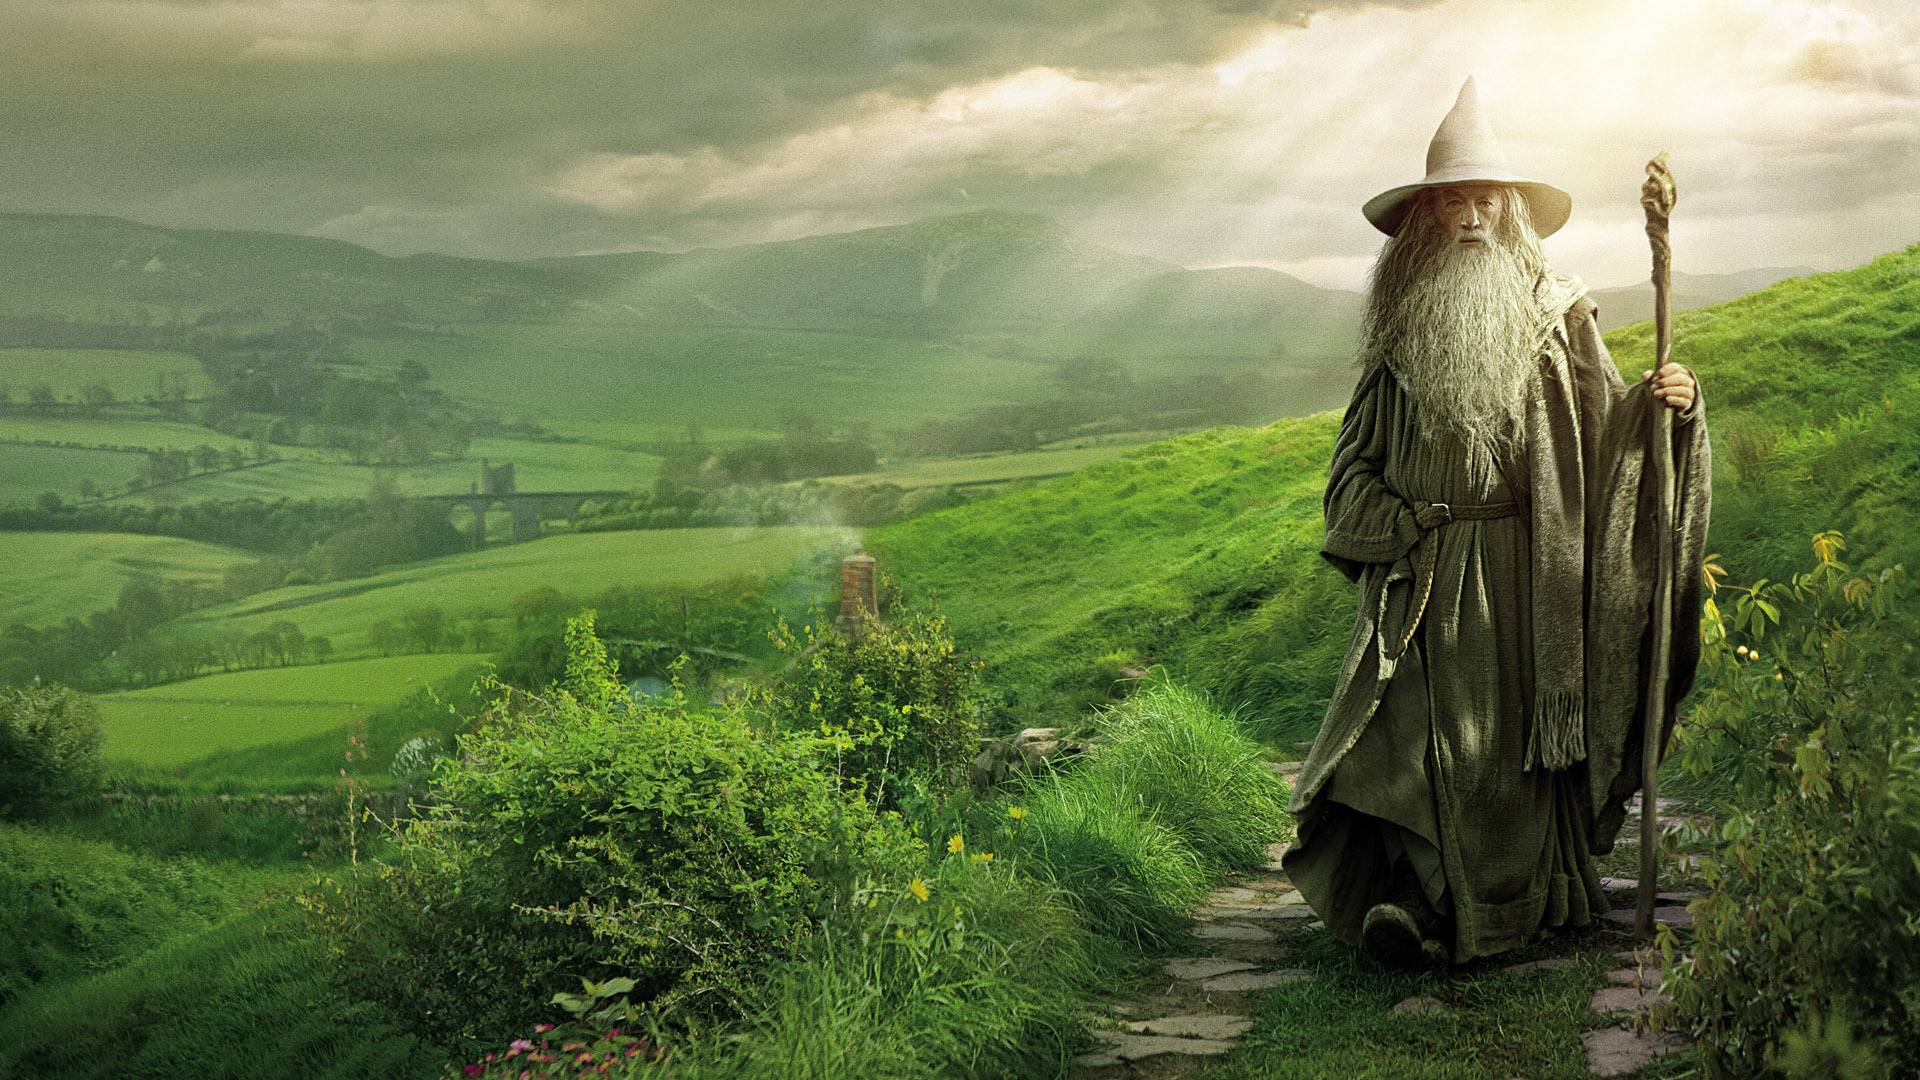 The Hobbit: An Unexpected Journey Wallpaper - The Hobbit: An ...